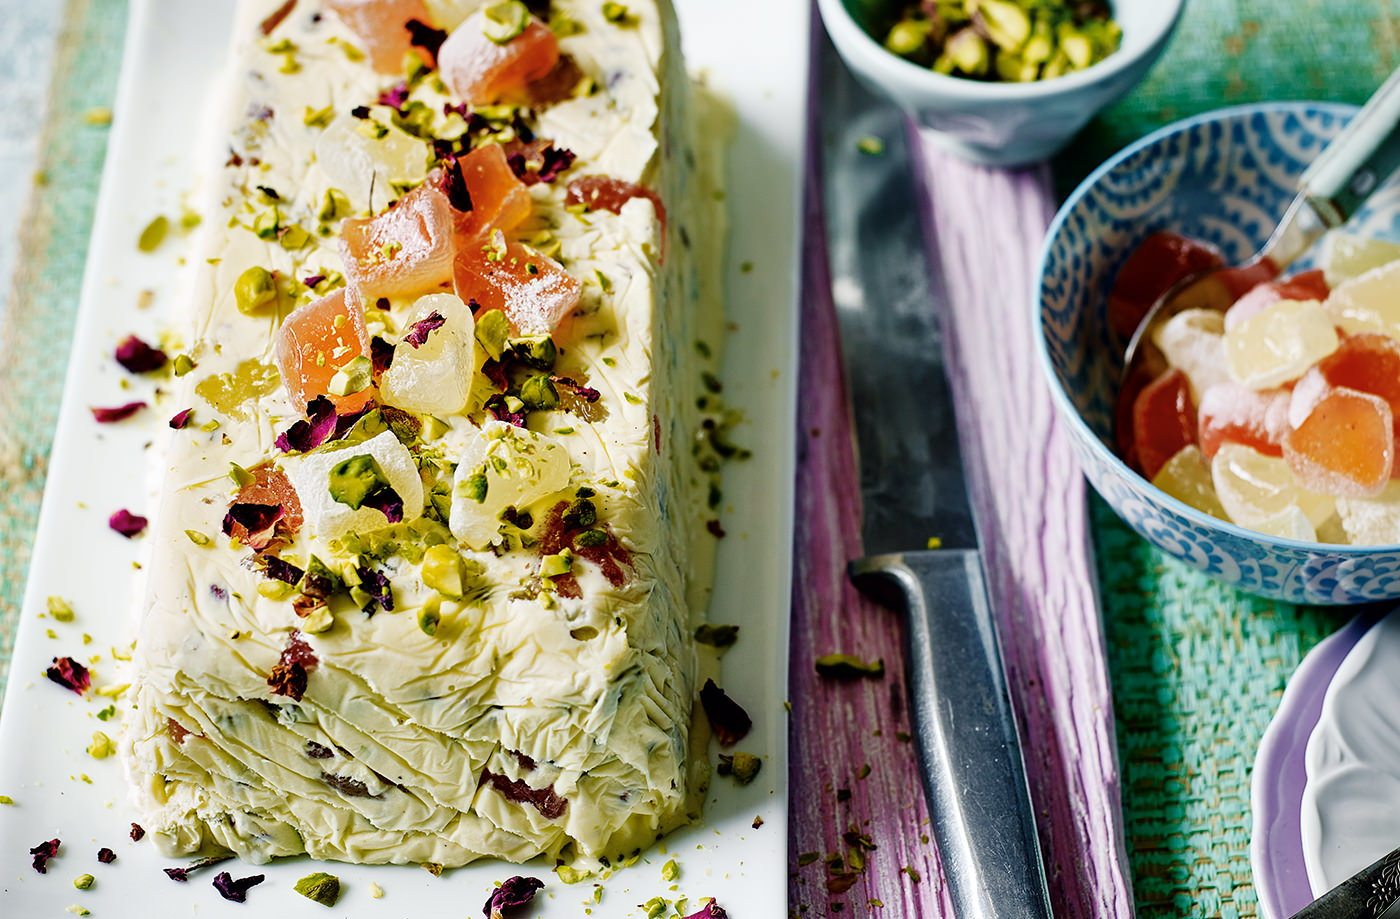 Pistachio and Turkish delight ice cream terrine recipe